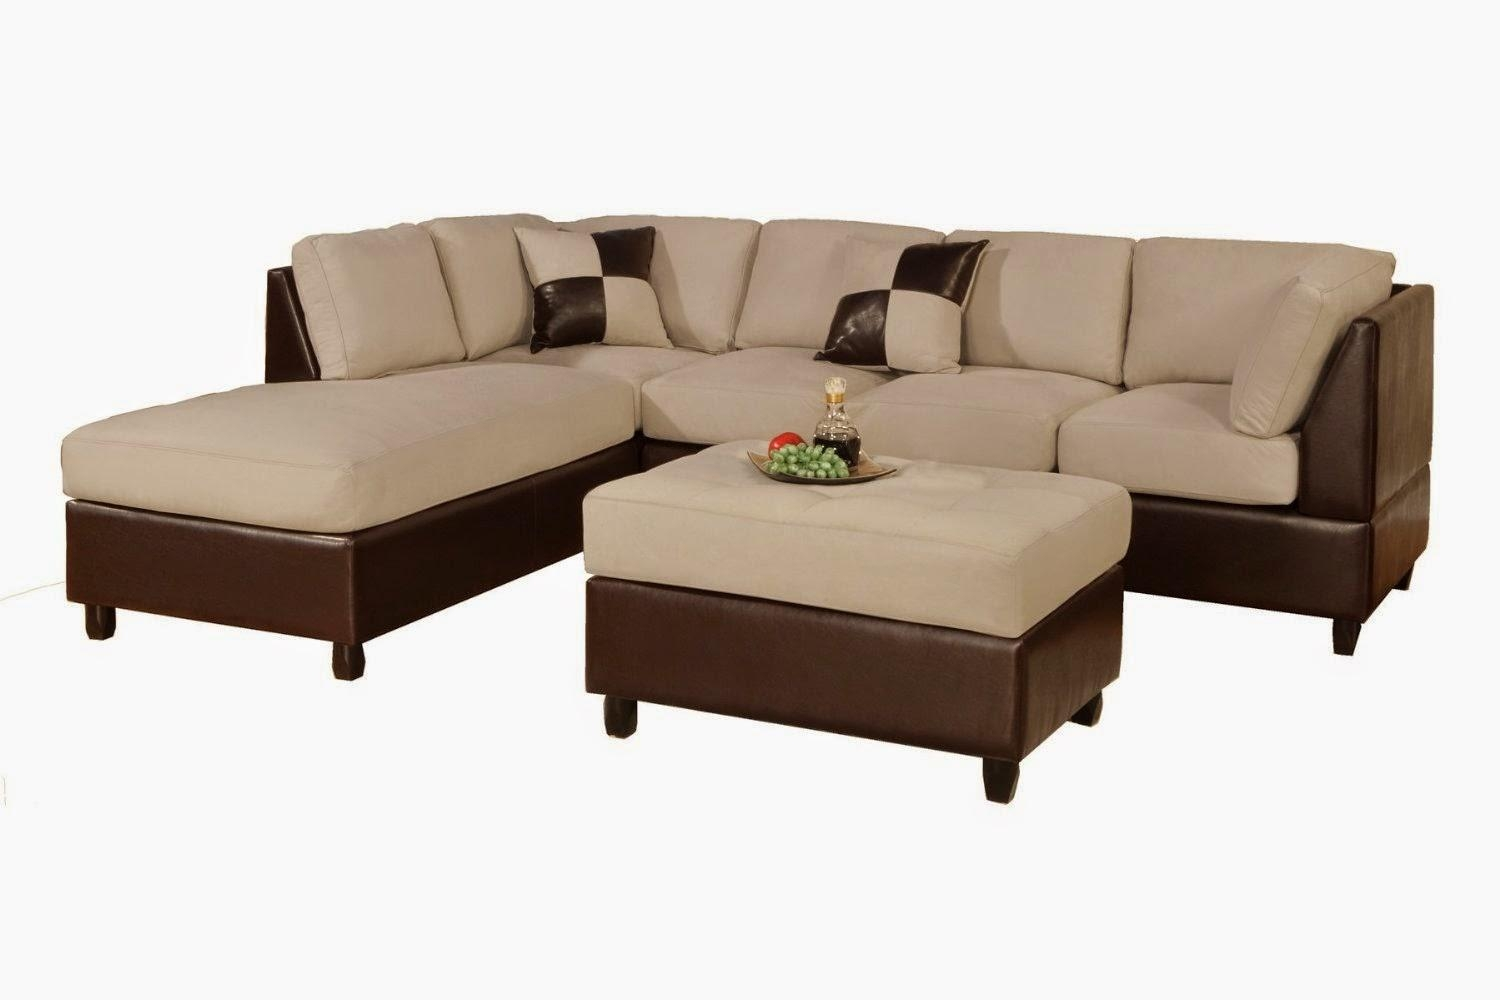 L Shaped Leather Sofa And Fashionable Corner Sectional L Shape Within Leather L Shaped Sectional Sofas (Image 13 of 20)